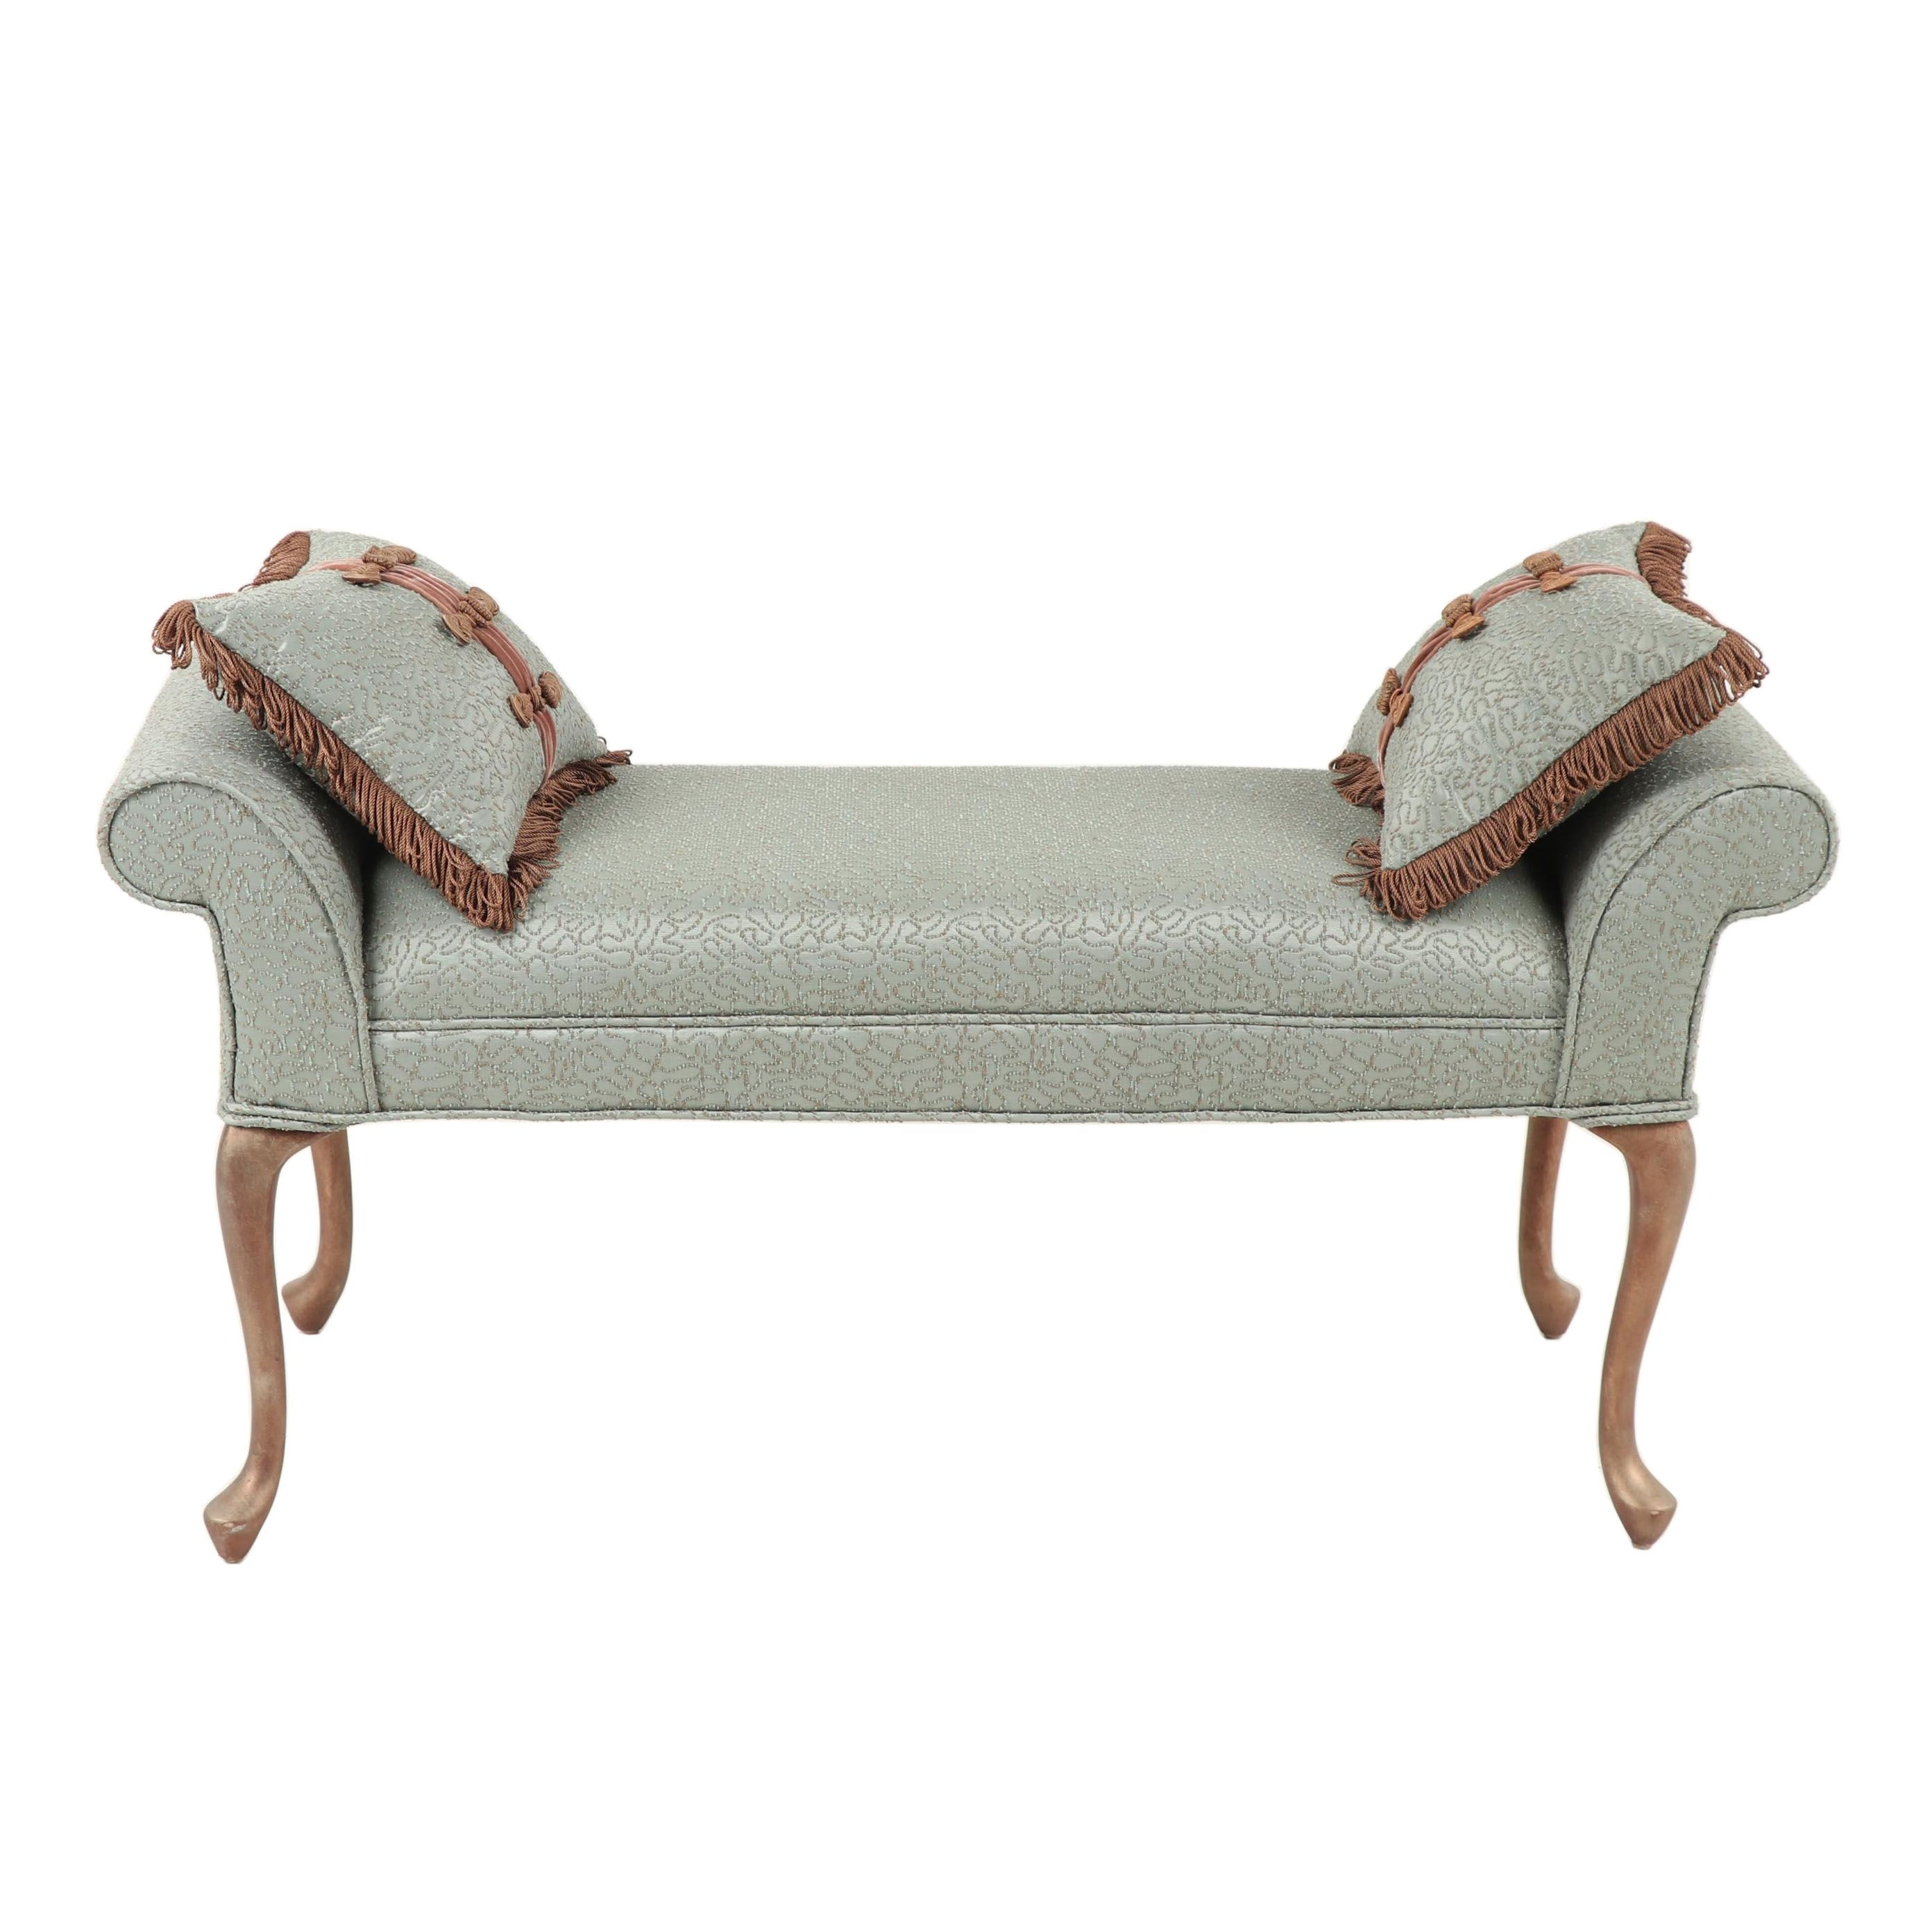 Contemporary Upholstered Bench with Accent Pillows